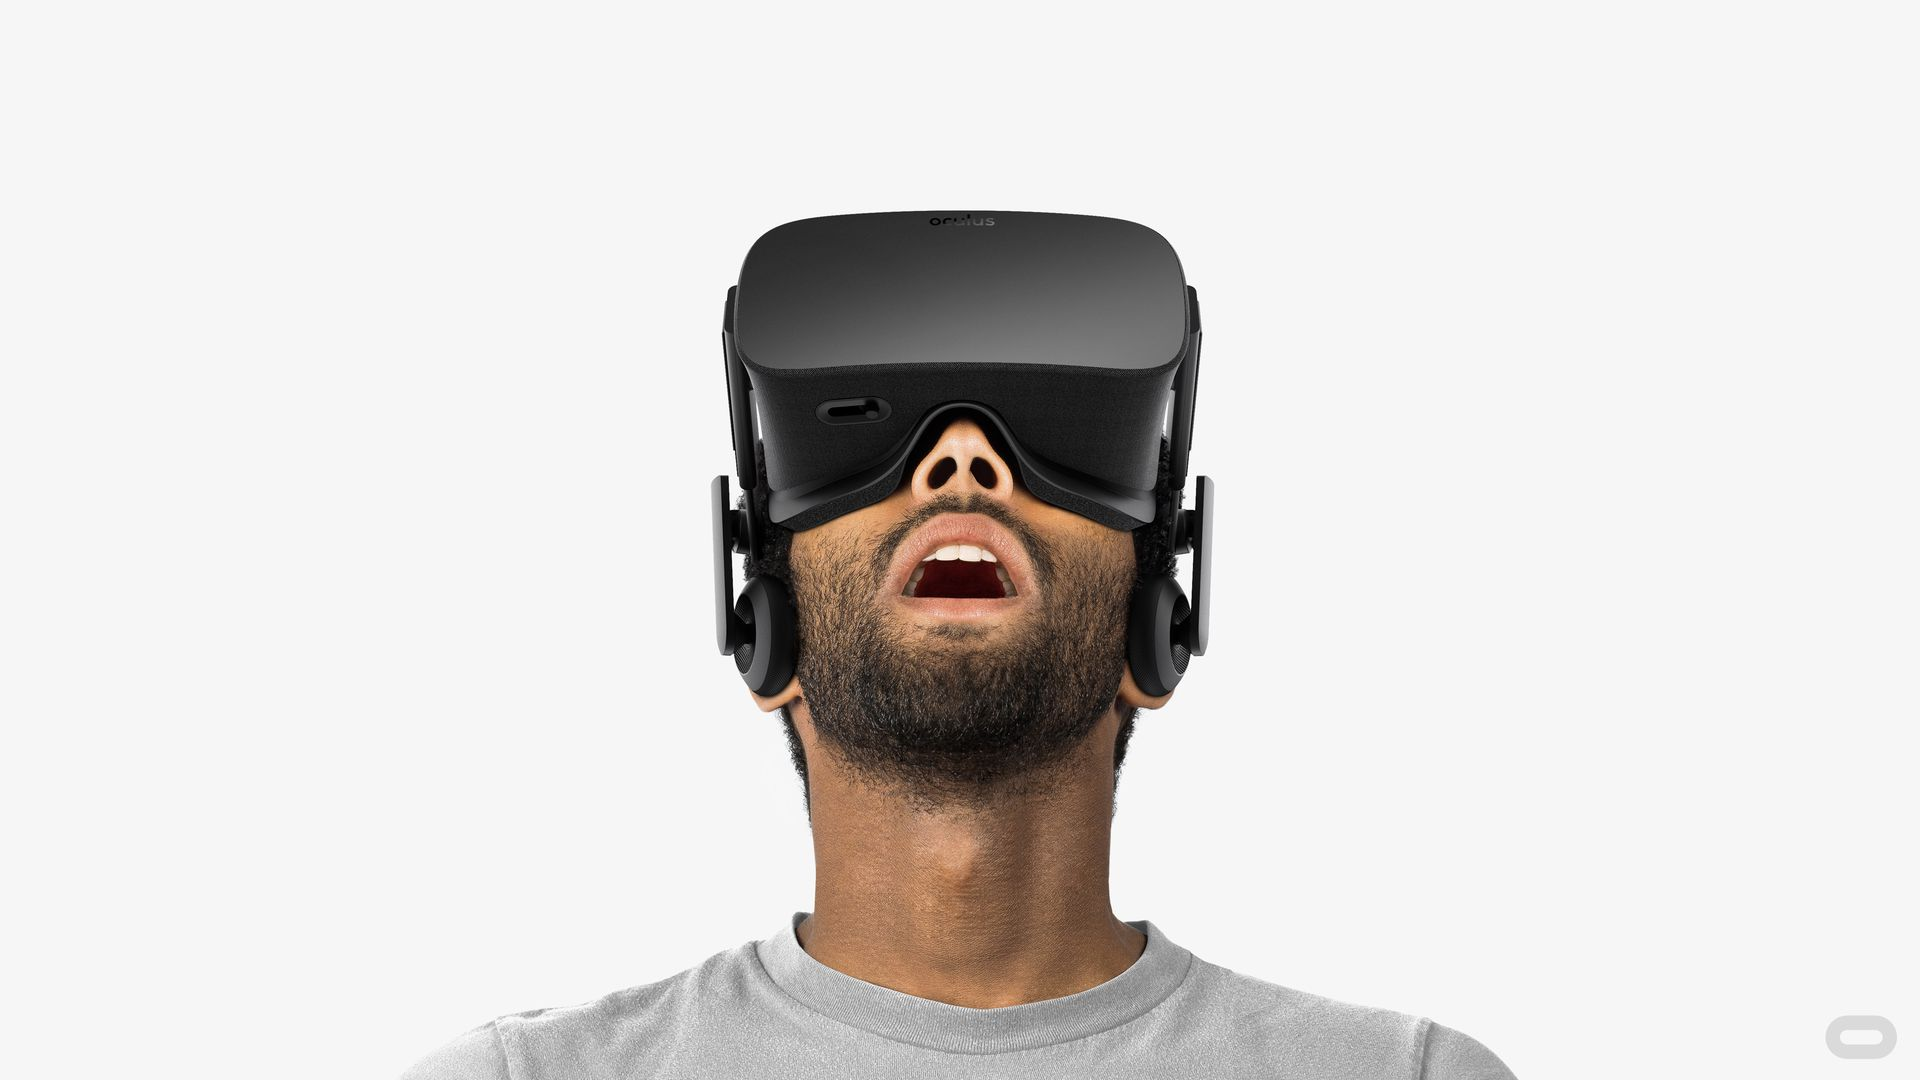 A man using an Oculus Rift headset